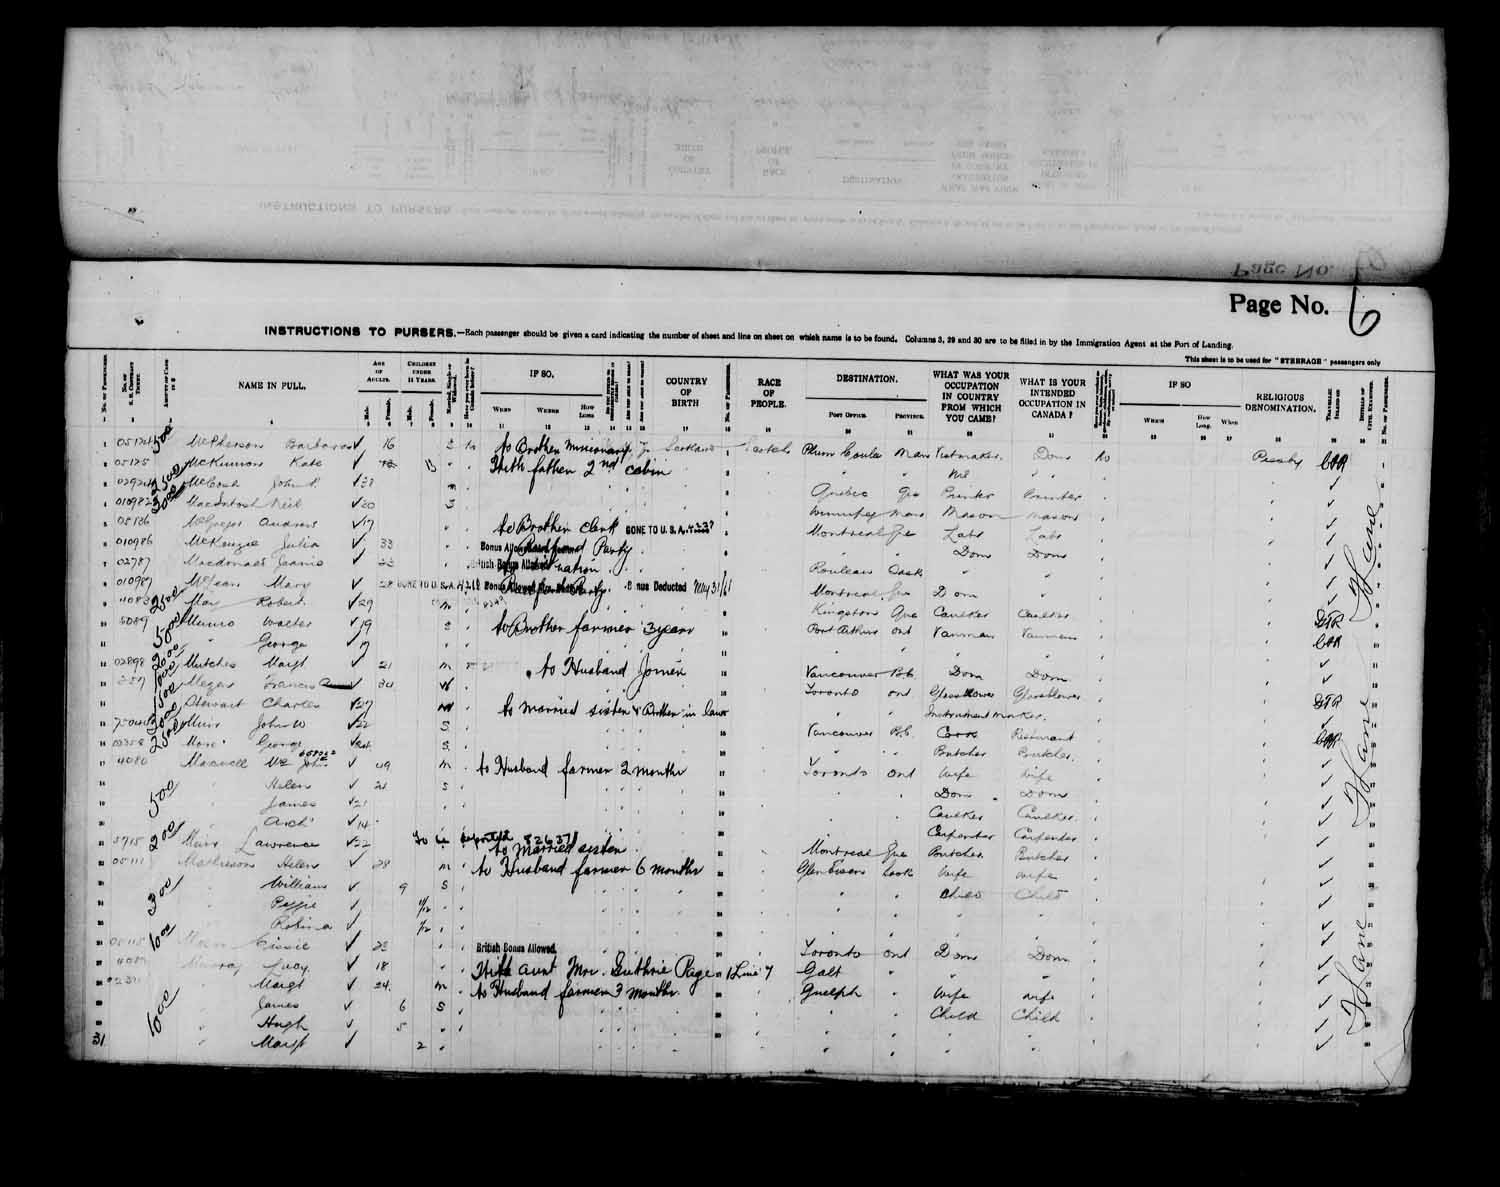 Digitized page of Passenger Lists for Image No.: e003566525